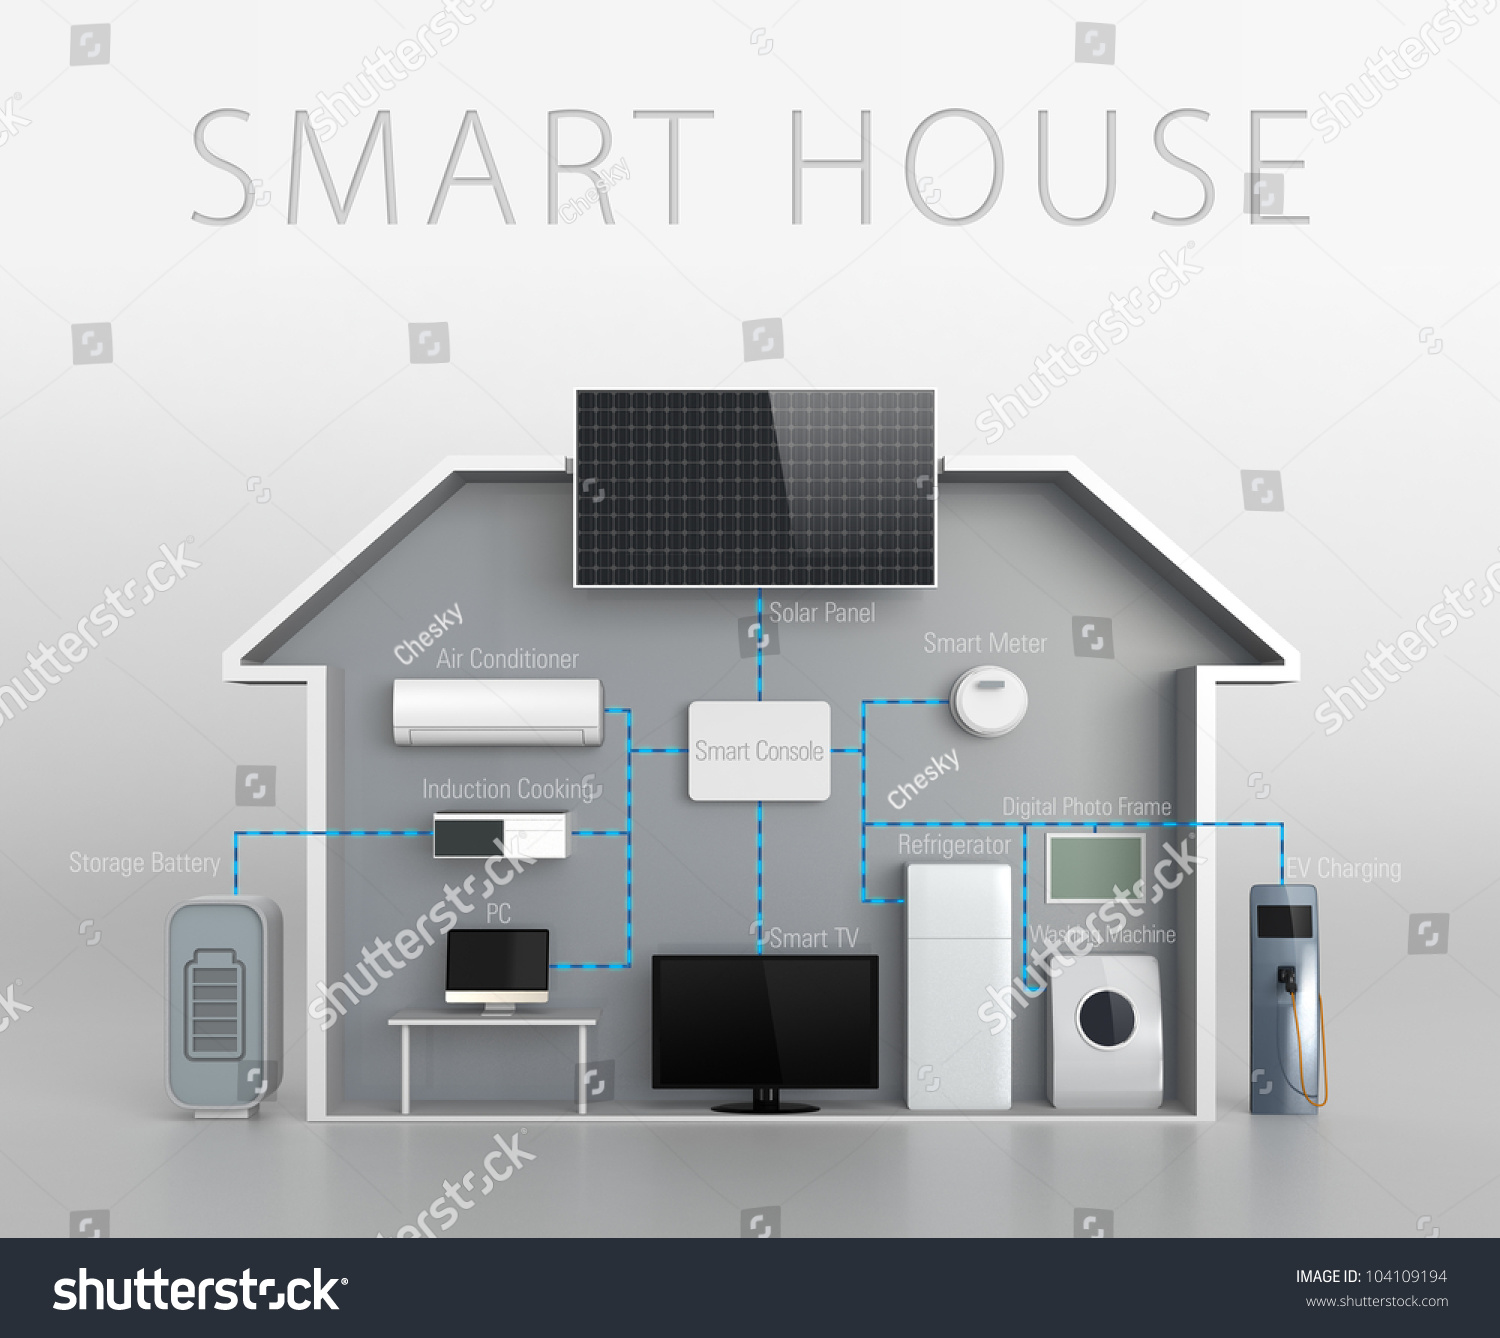 smart house concept with text description stock photo 104109194 shutterstock. Black Bedroom Furniture Sets. Home Design Ideas